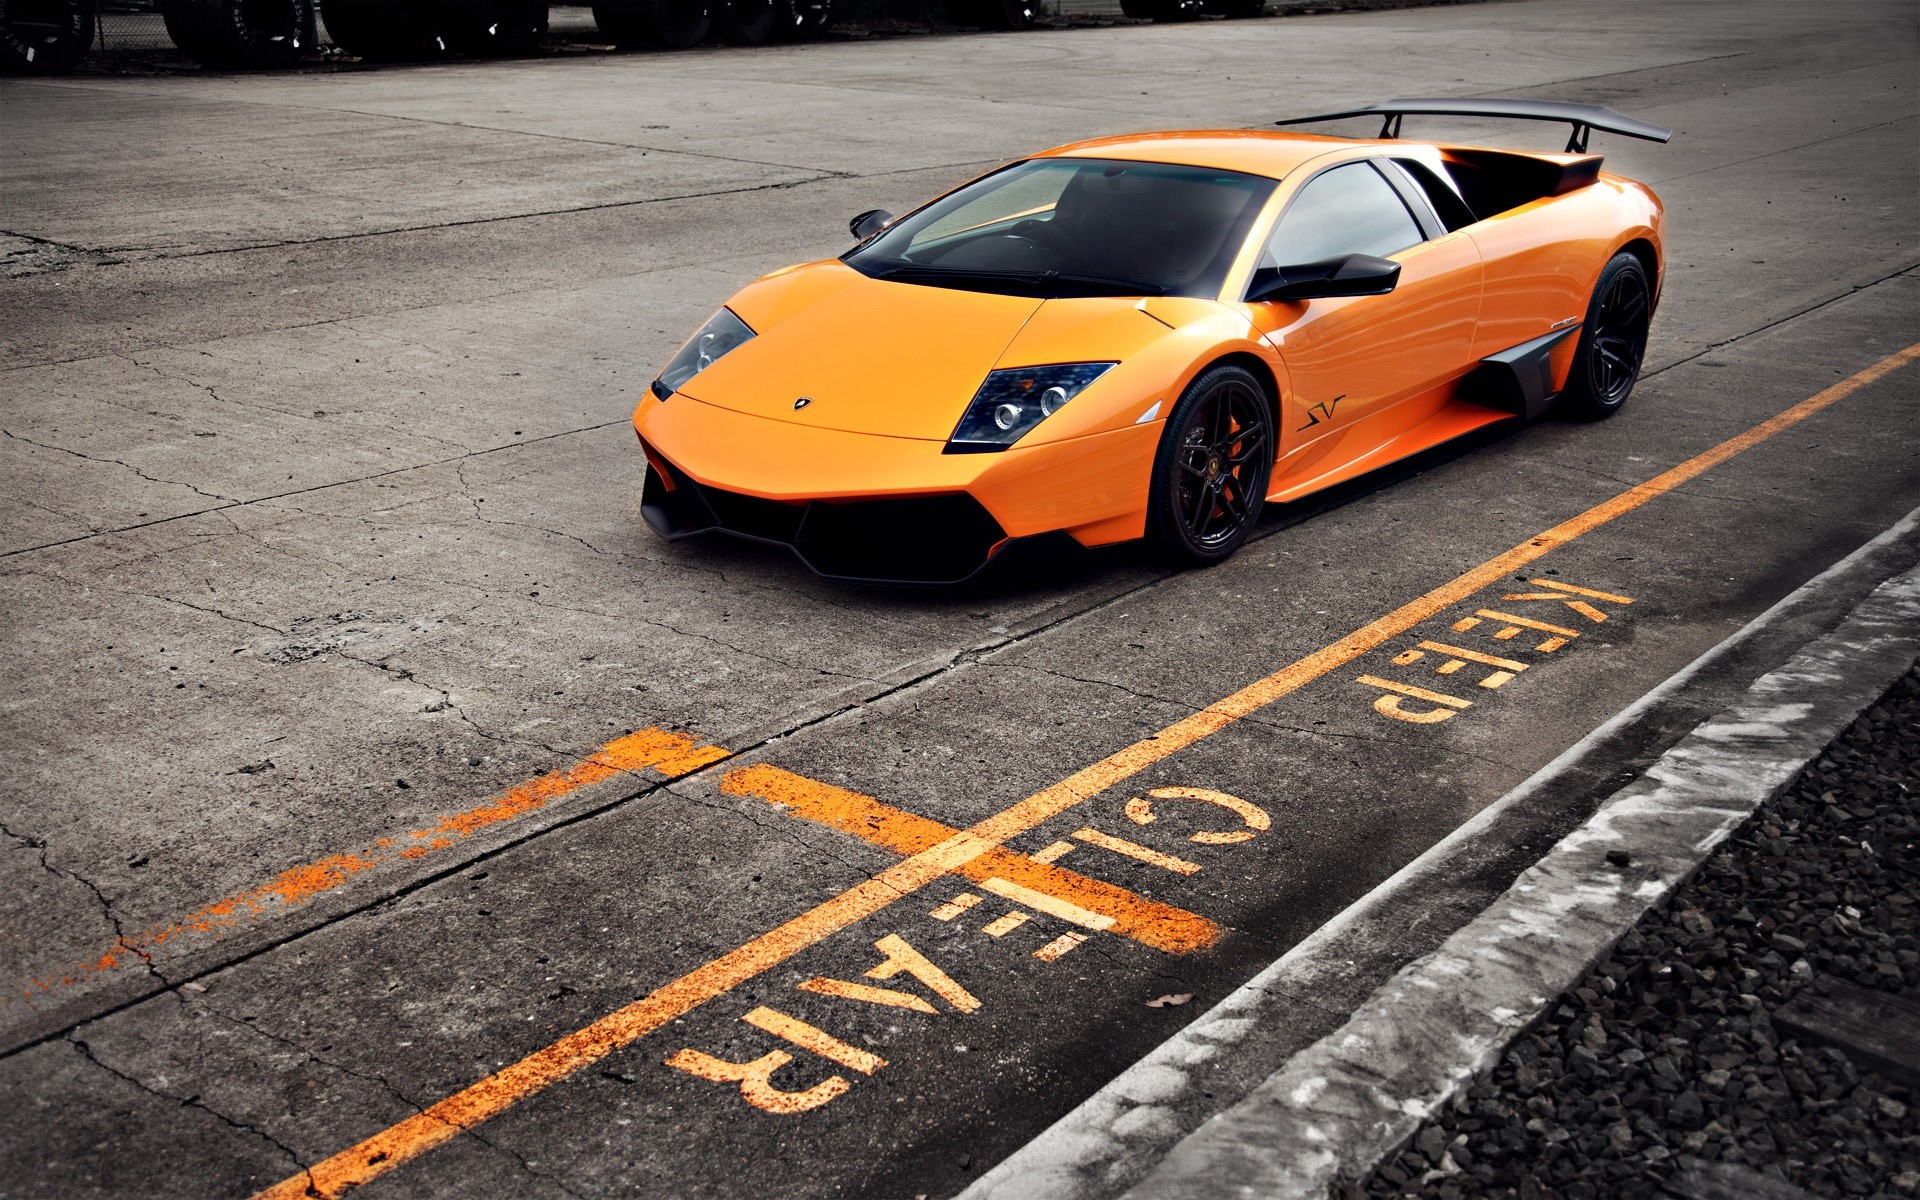 Wallpaper Lamborghini murcielago LP670 4 SV 2 Images